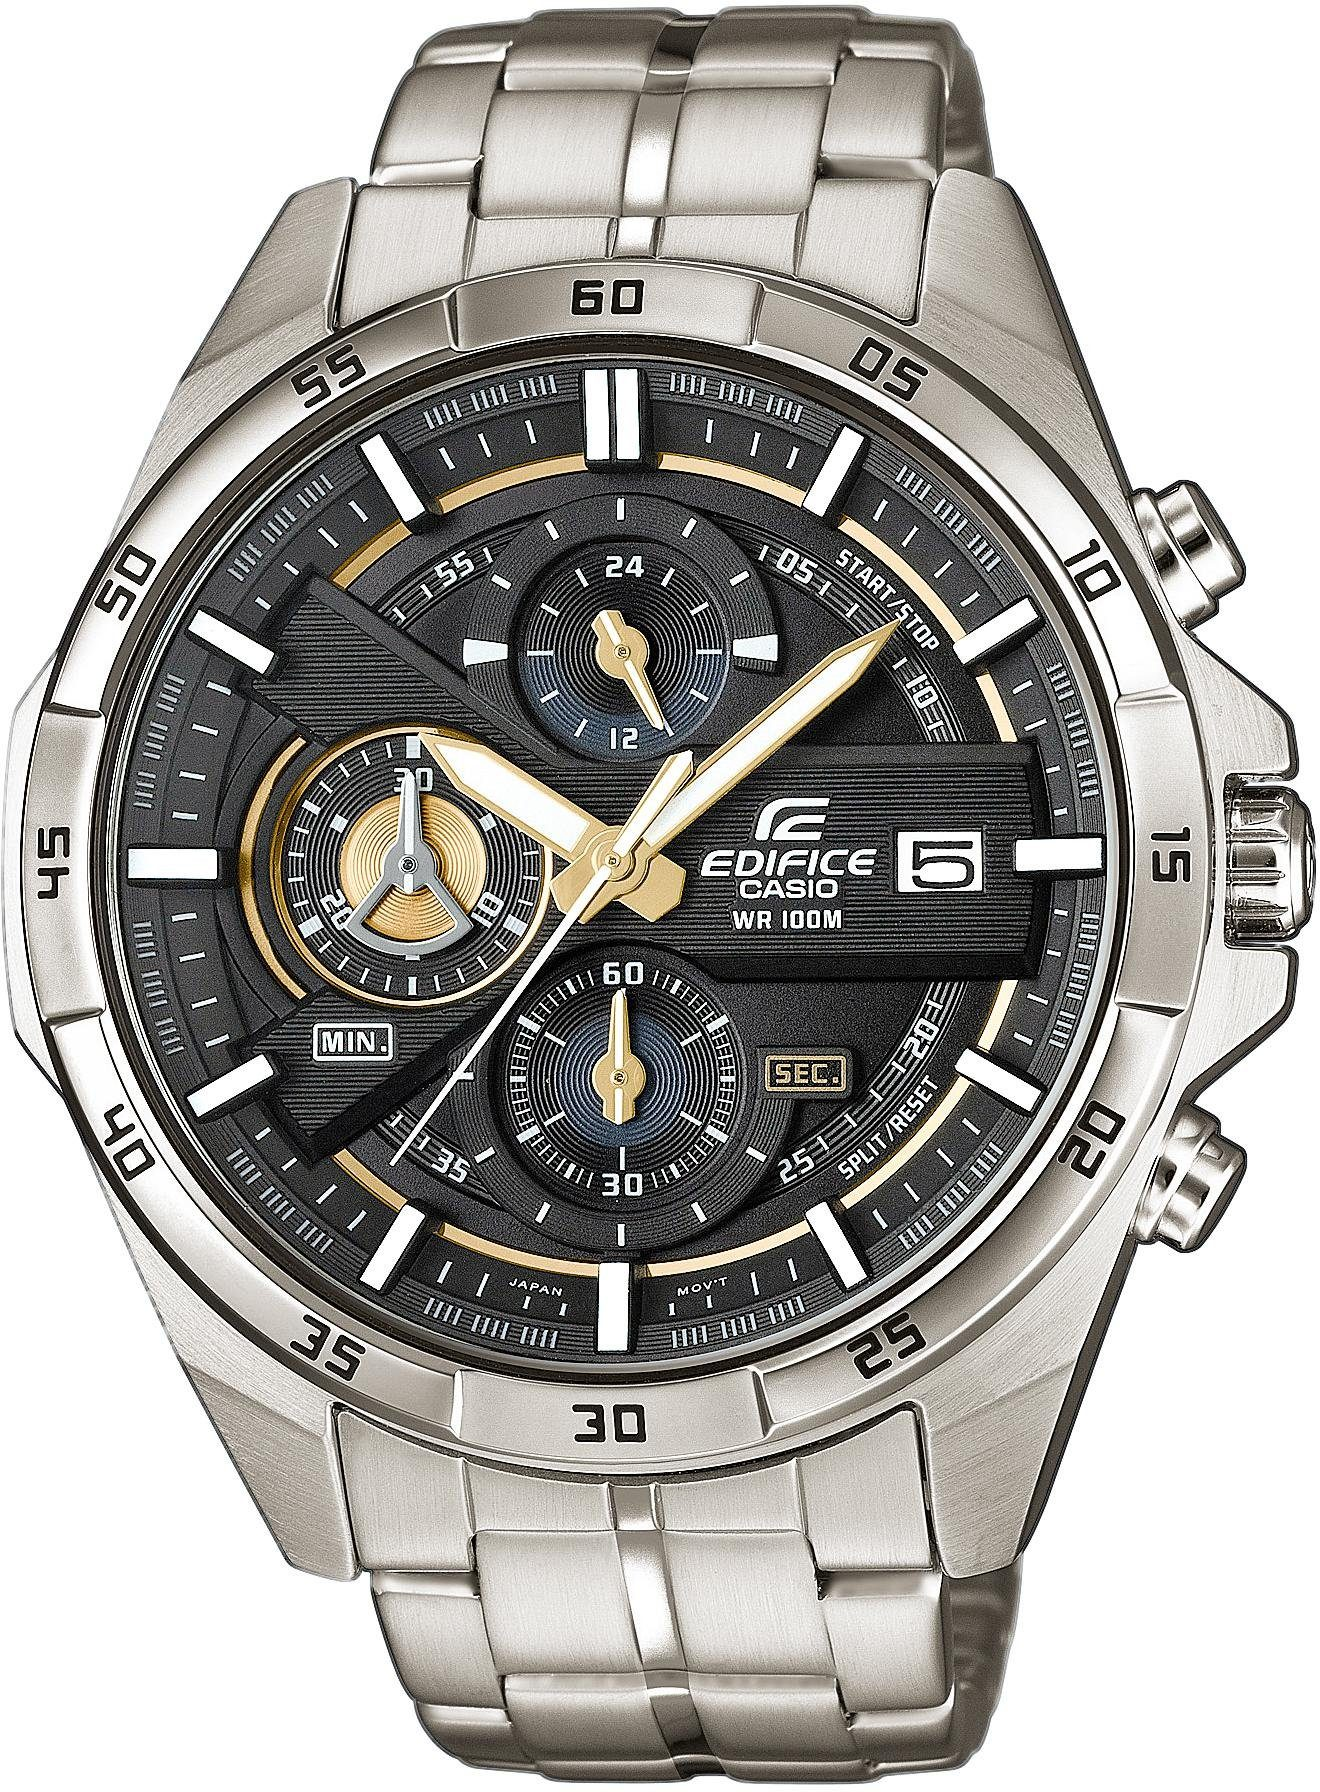 Edifice Chronograph »EFR-556D-1AVUEF«